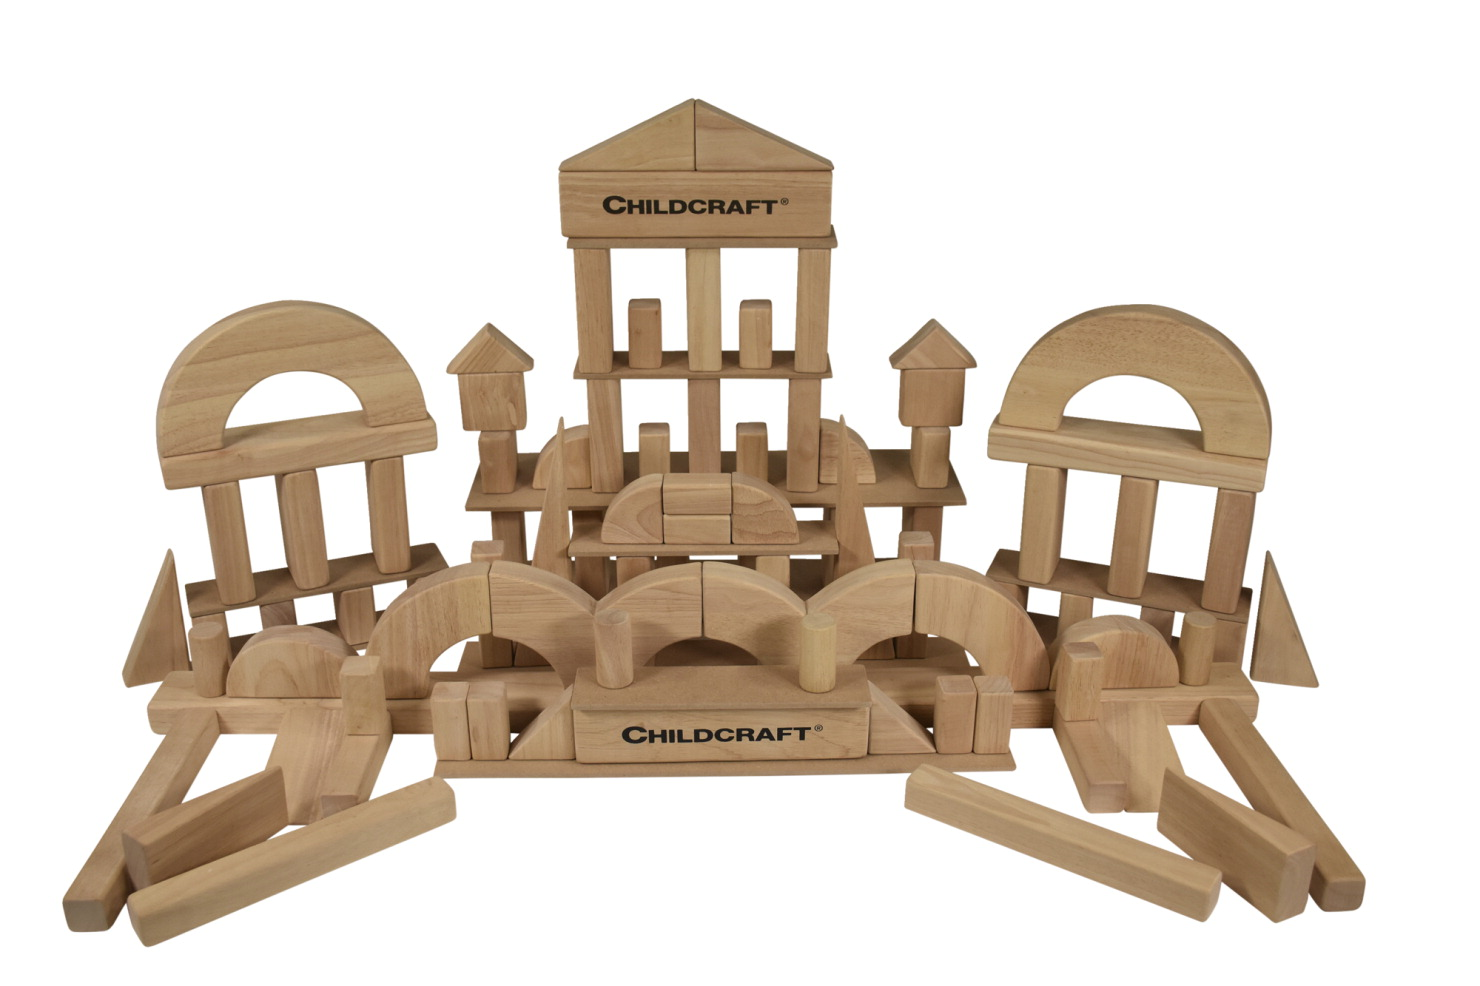 Childcraft Standard Unit Block Set, Set of 100